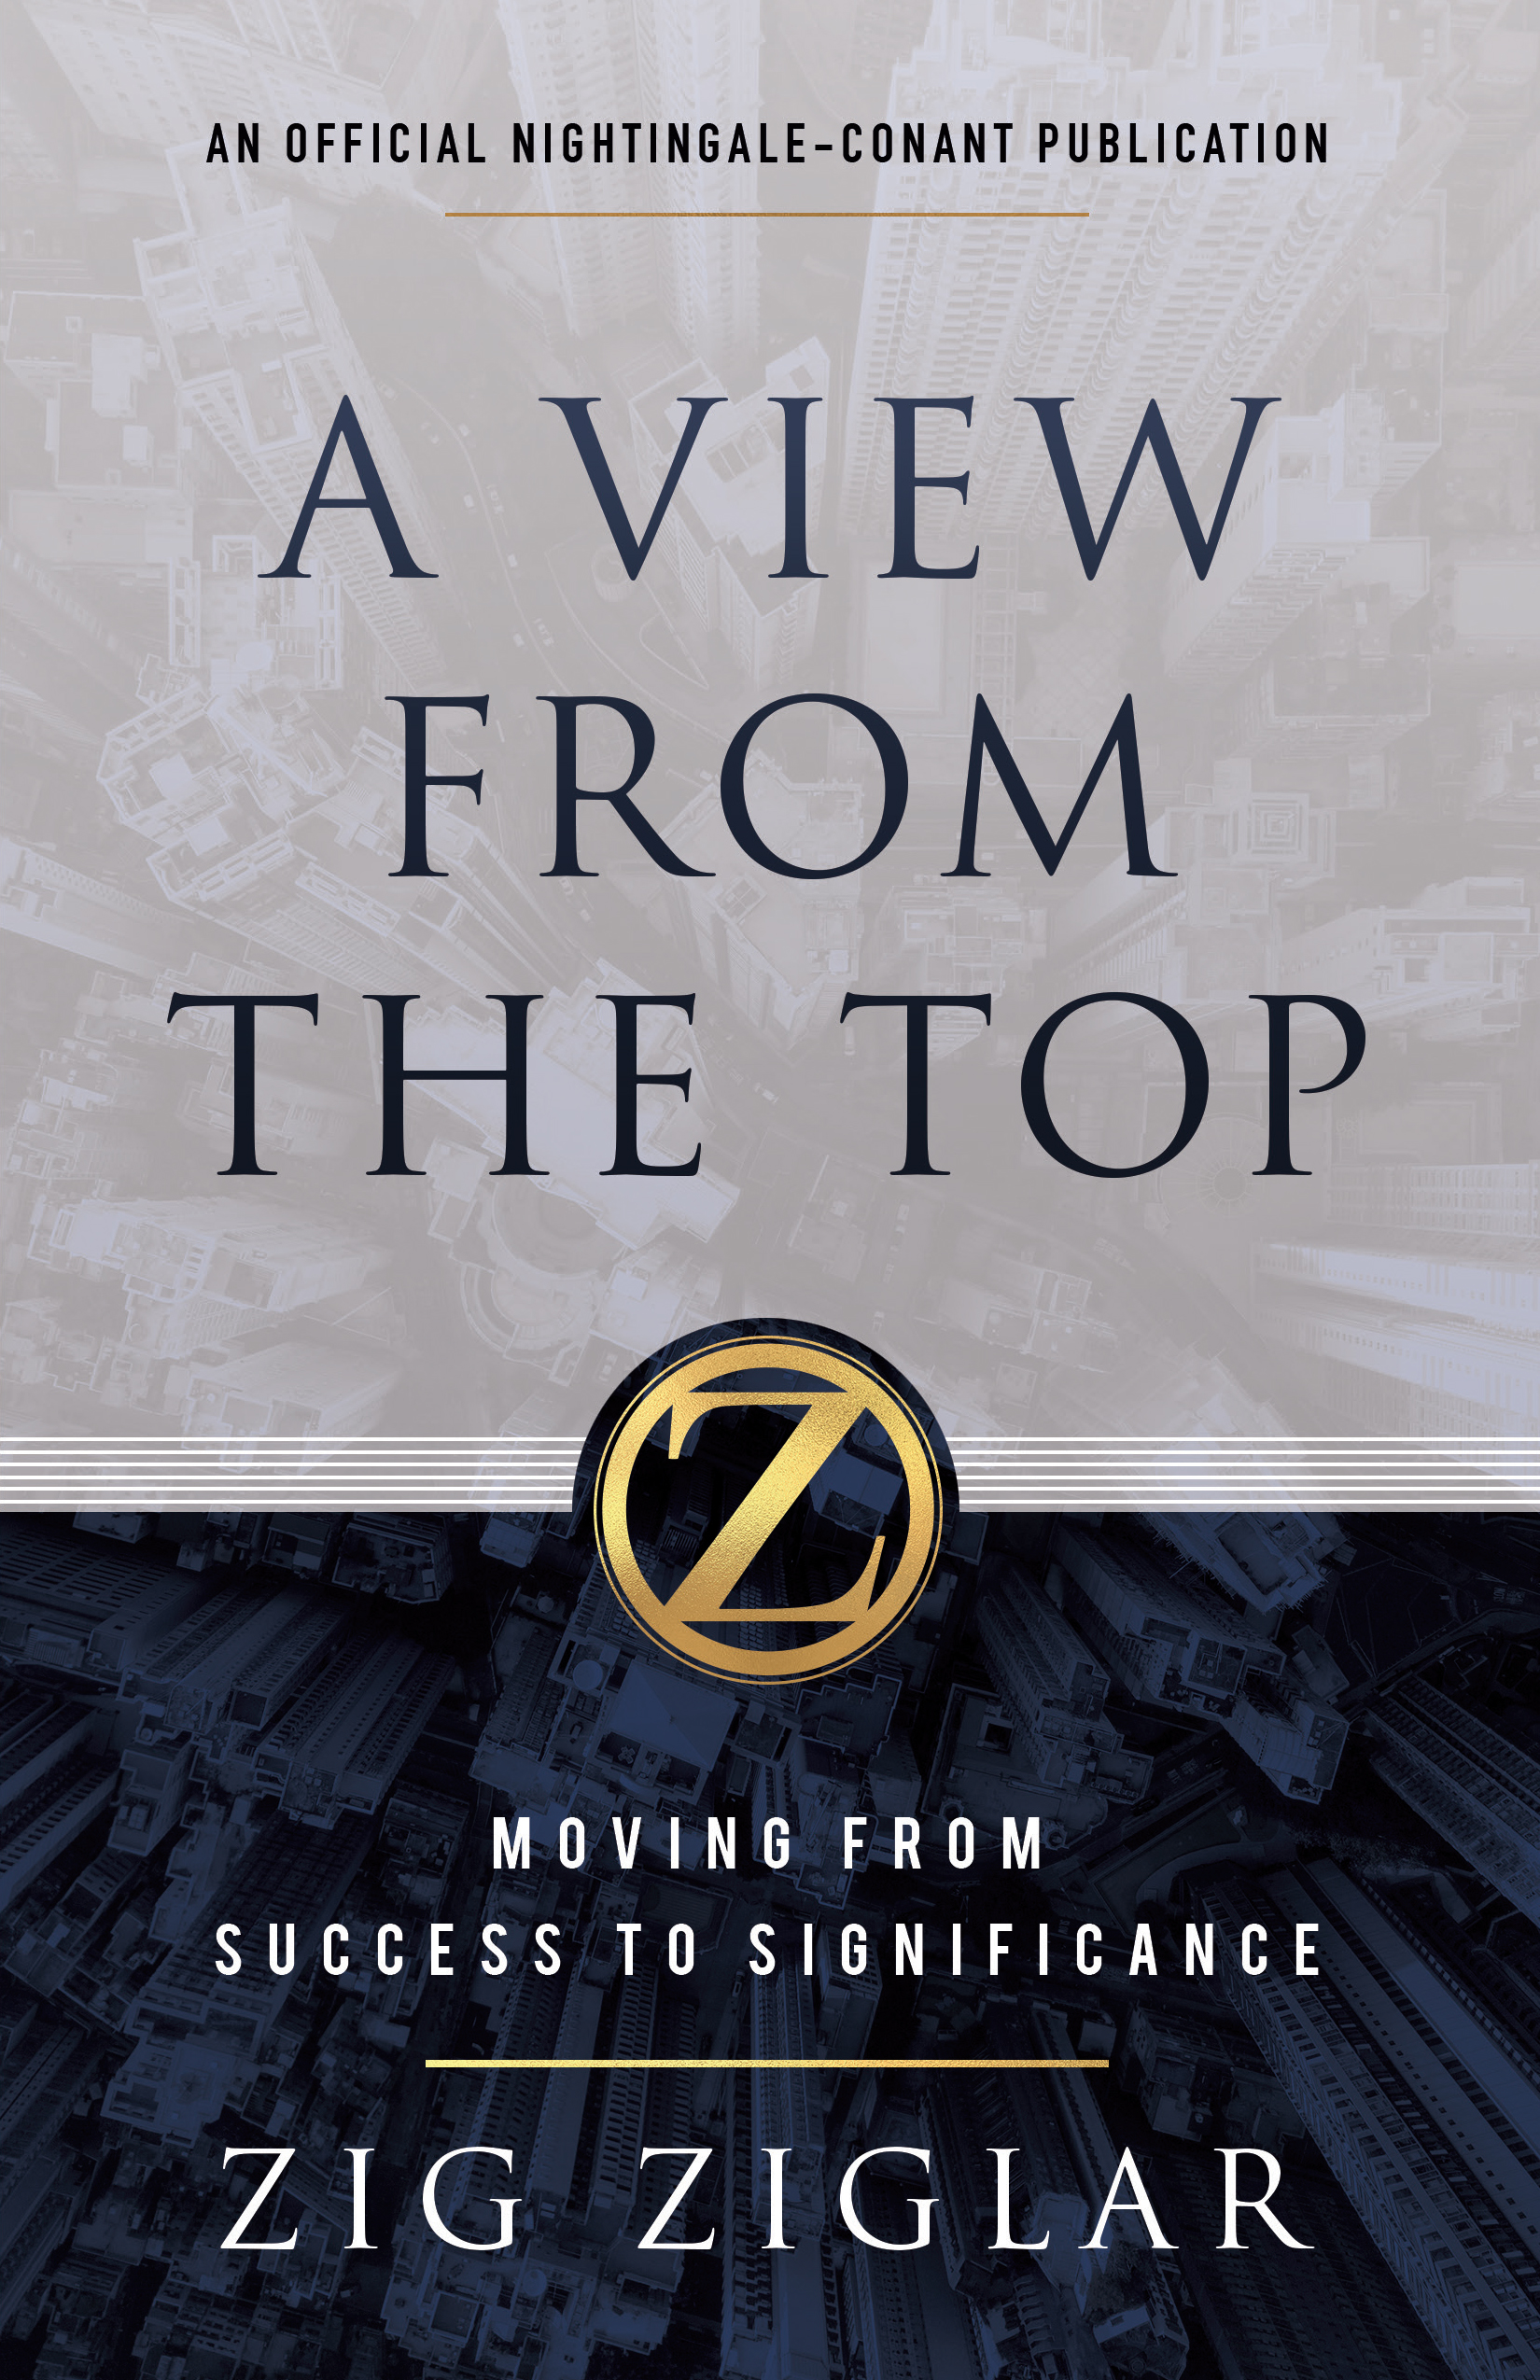 A View From the Top - By Zig Ziglar